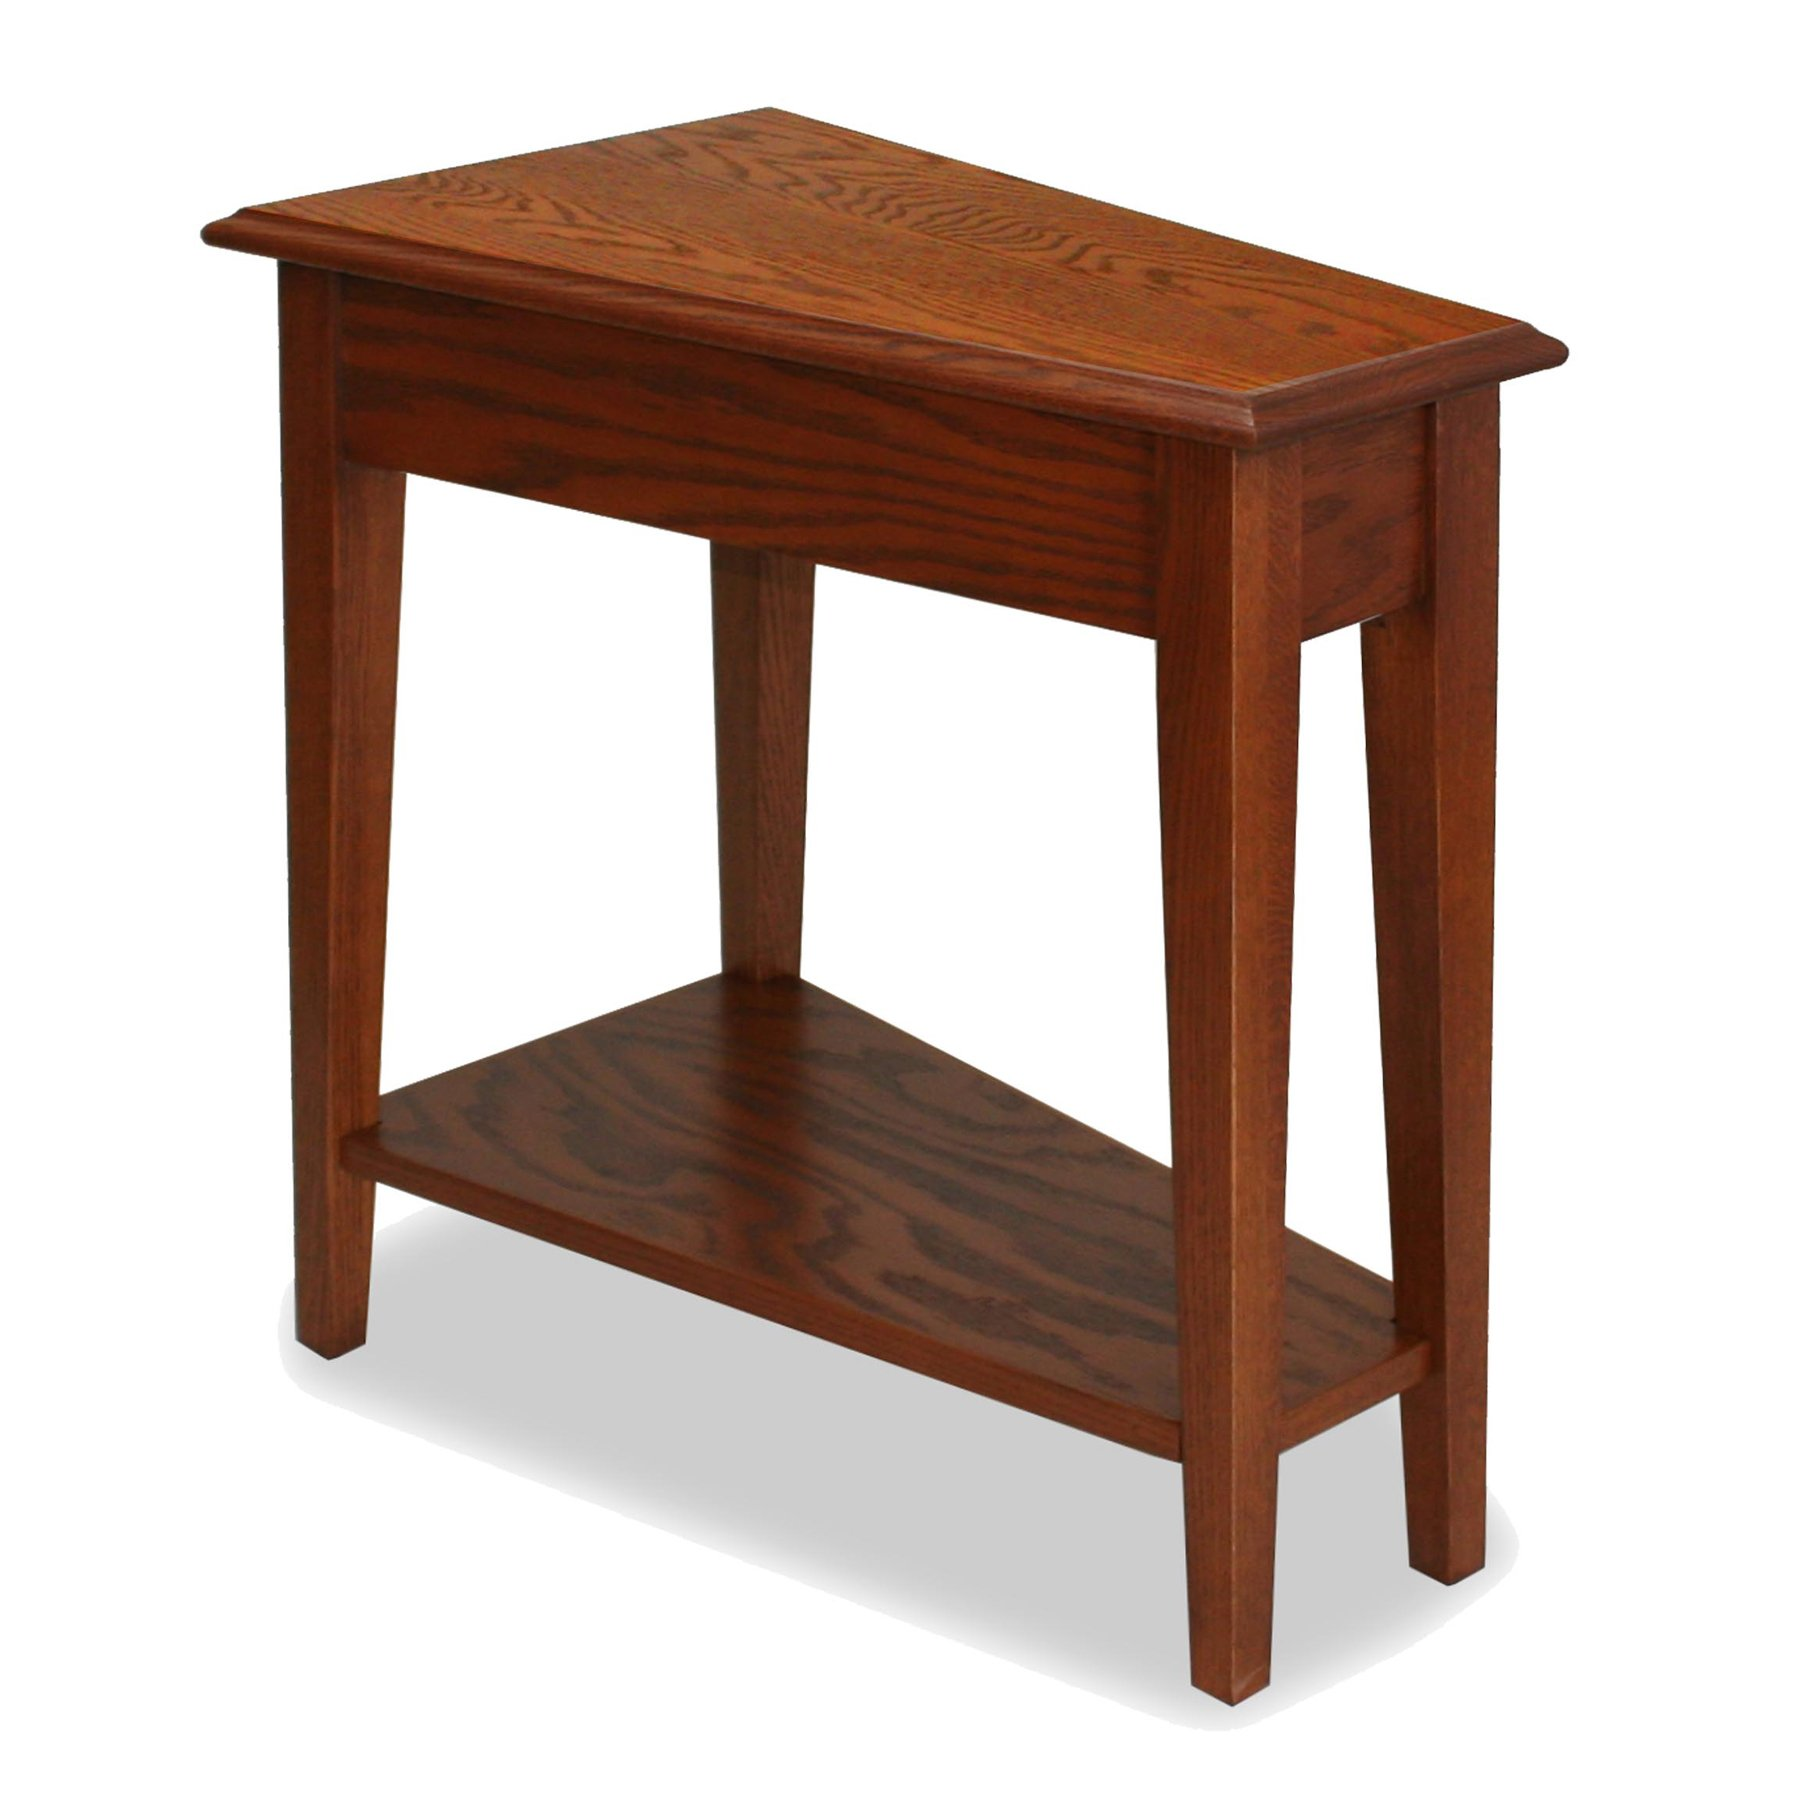 Leick Recliner Wedge End Table, Medium Oak by Leick Furniture